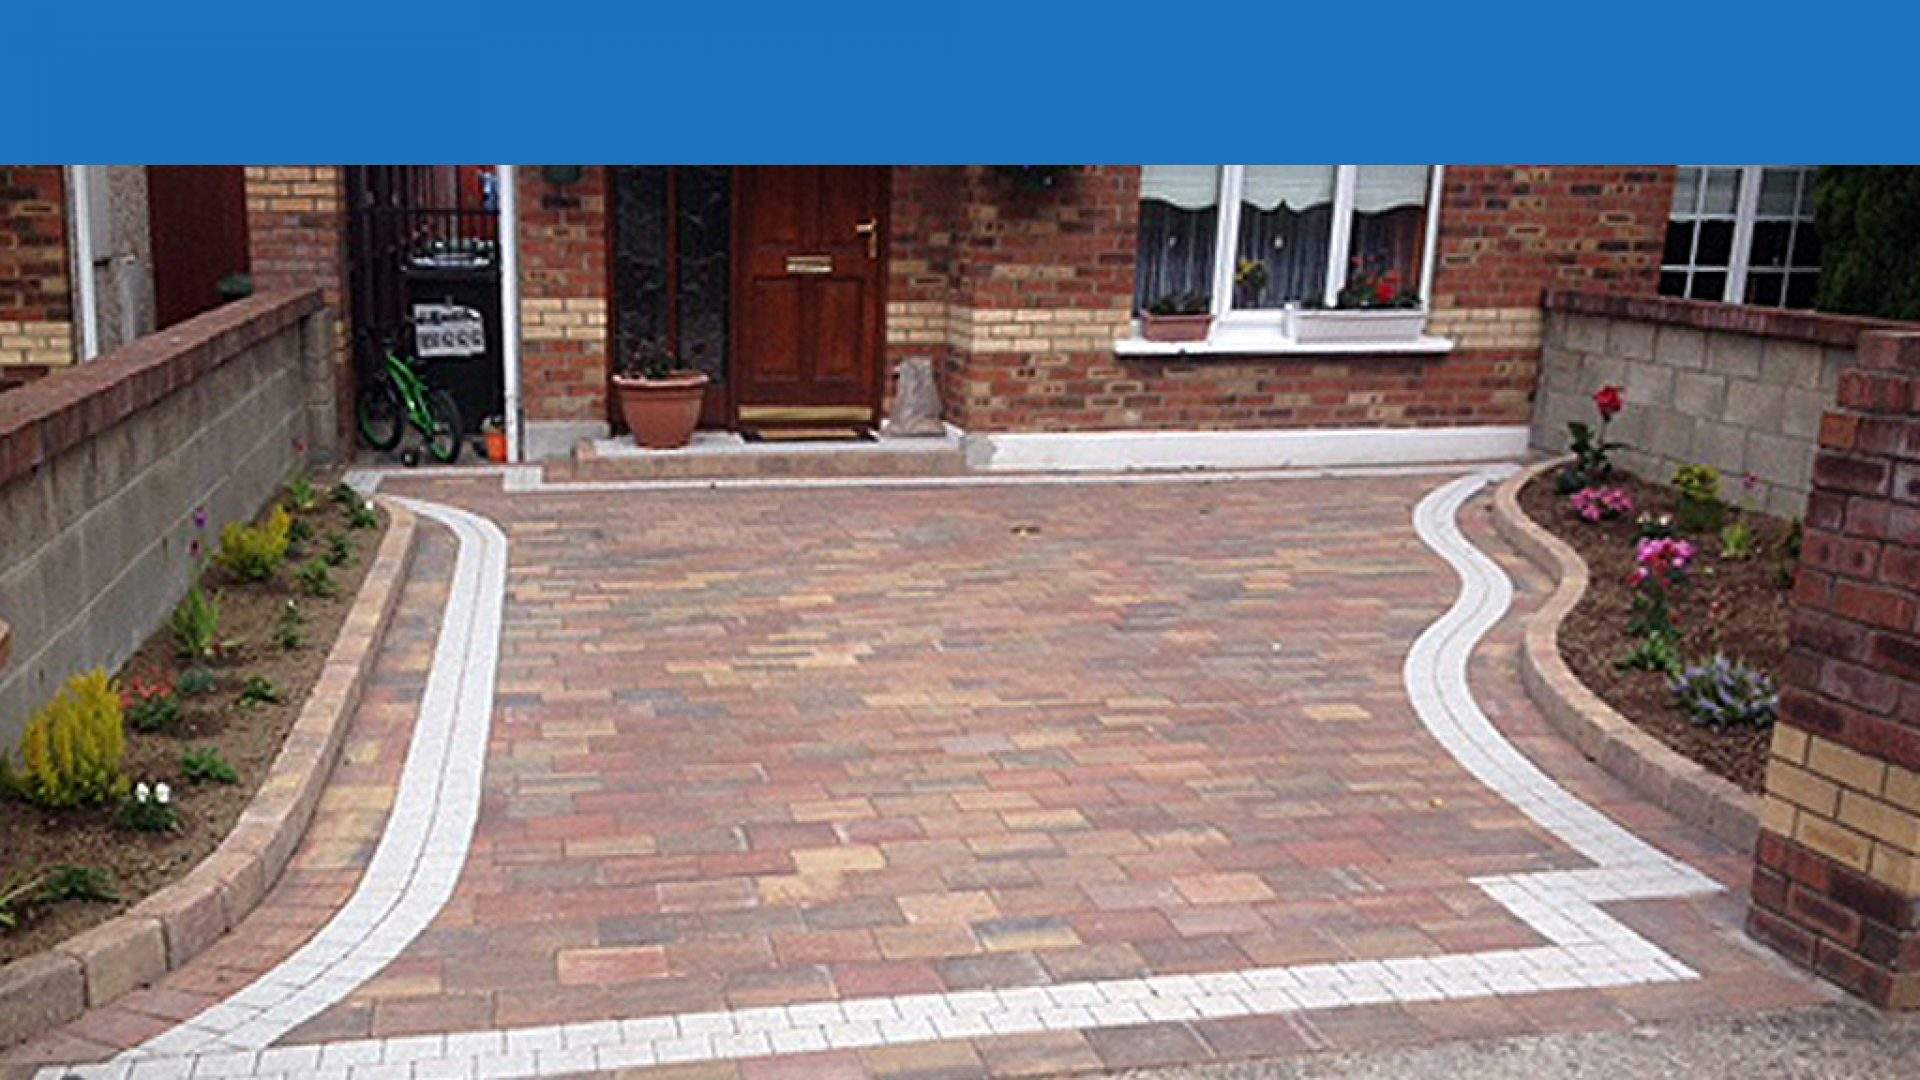 Paving Contractors Dublin, Tarmac Dublin – Driveways 4 You